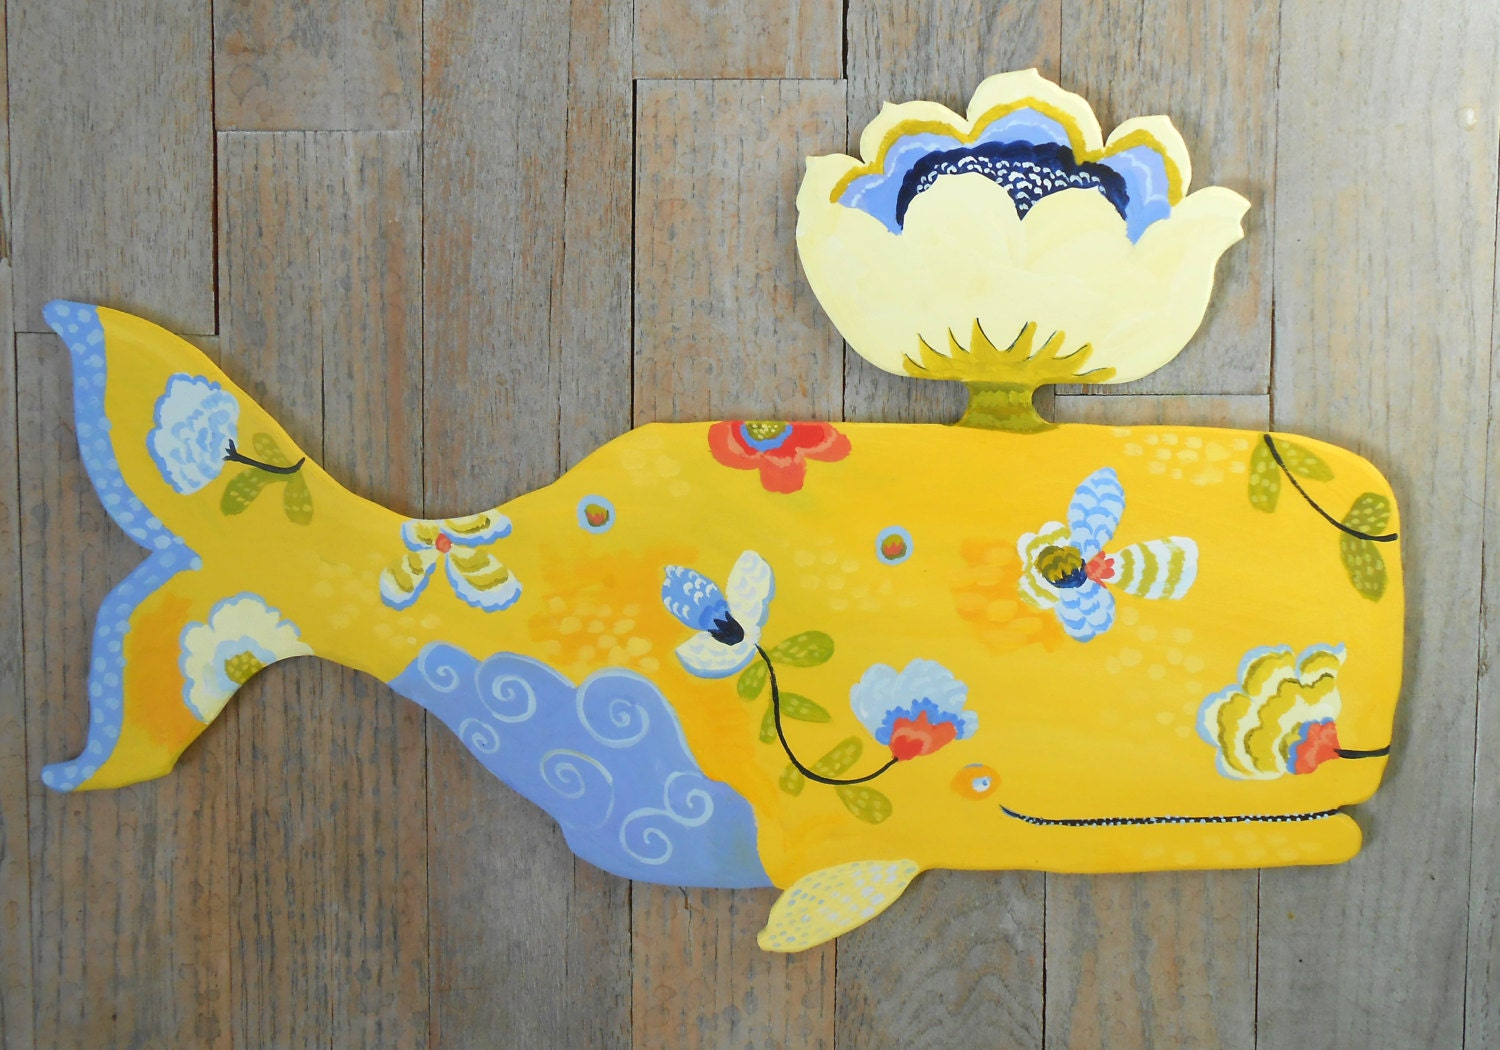 Provence whales wood wall sculptures by Kimberly Hodges, multiple ...